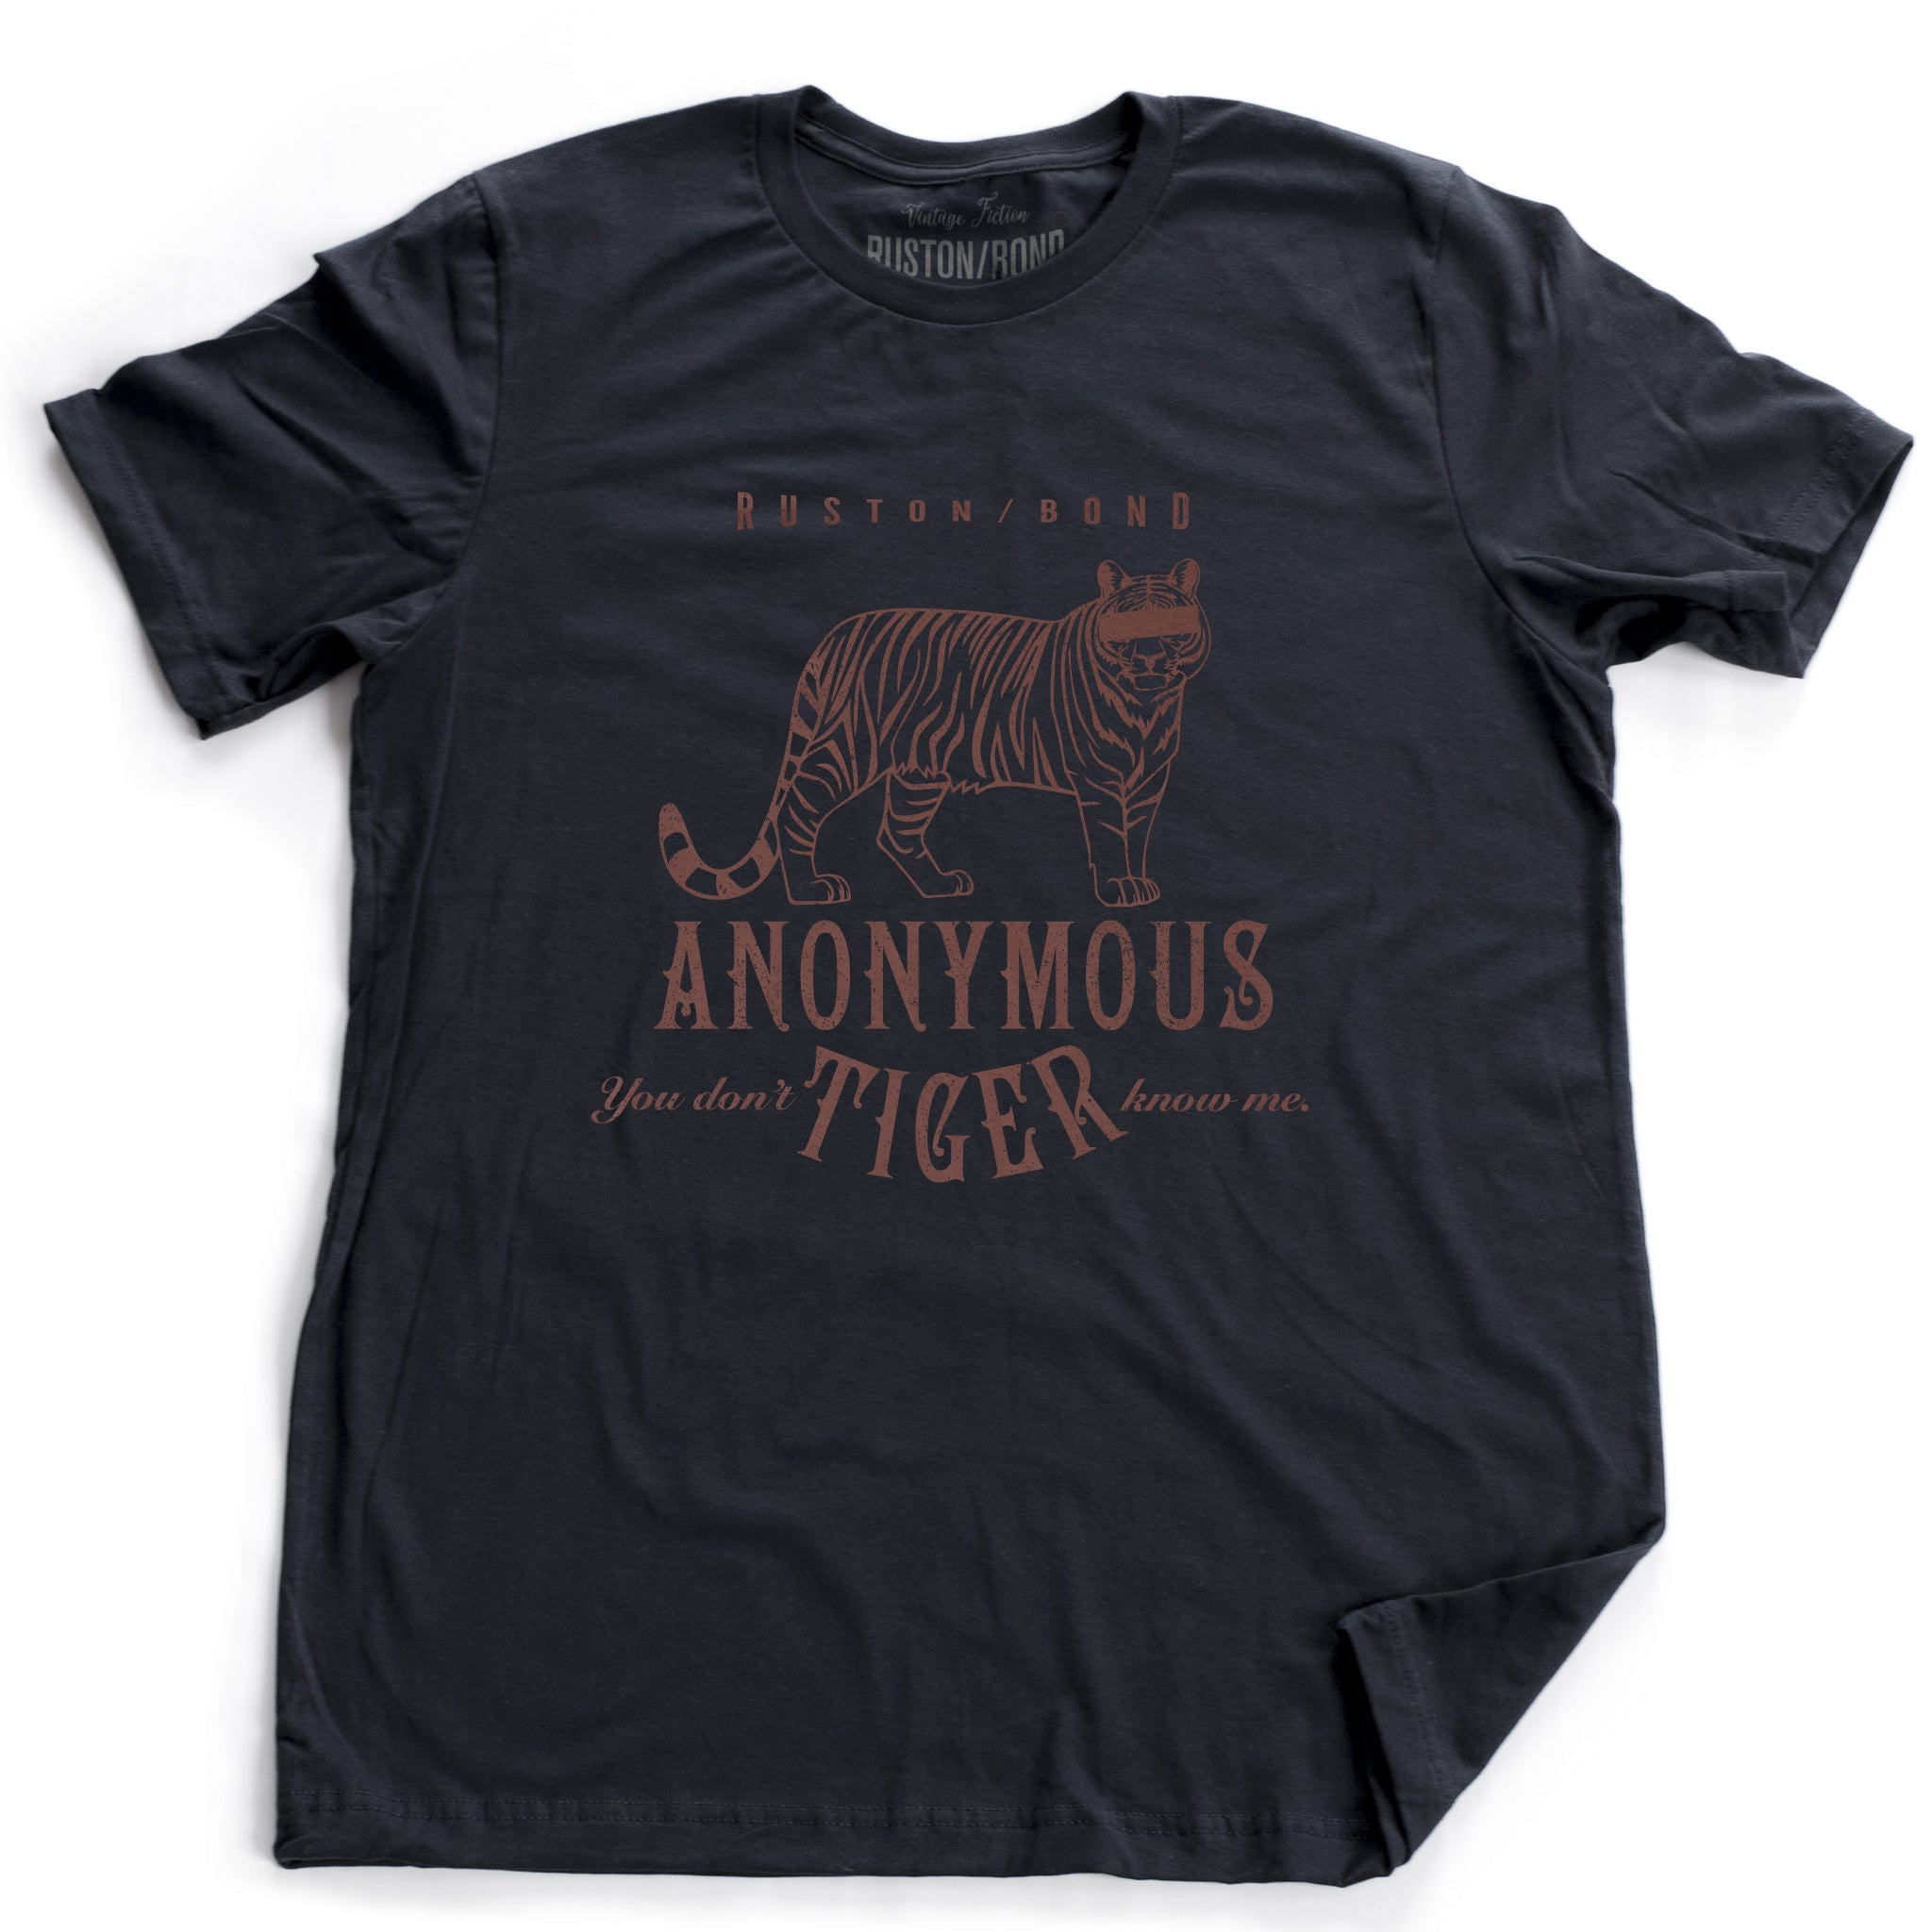 "Navy Blue retro, vintage-inspired fashion t-shirt with a sarcastic graphic of a masked, anonymous tiger and the text ""You don't know me"" by Ruston/Bond brand. From wolfsaint.net"